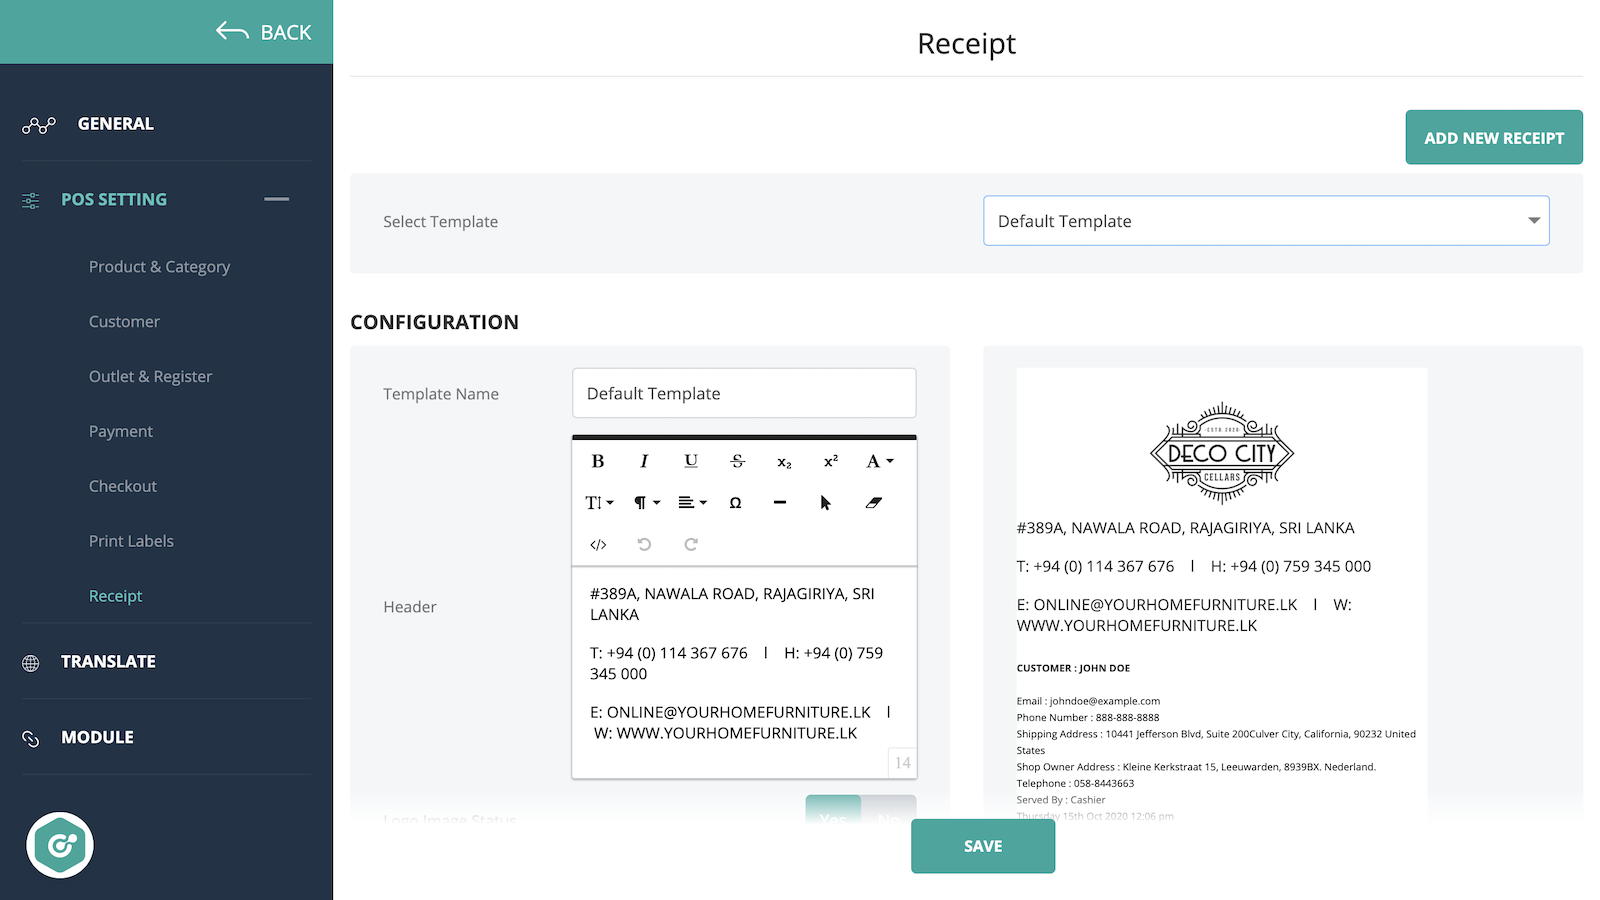 connectpos custom receipts for shopify stores